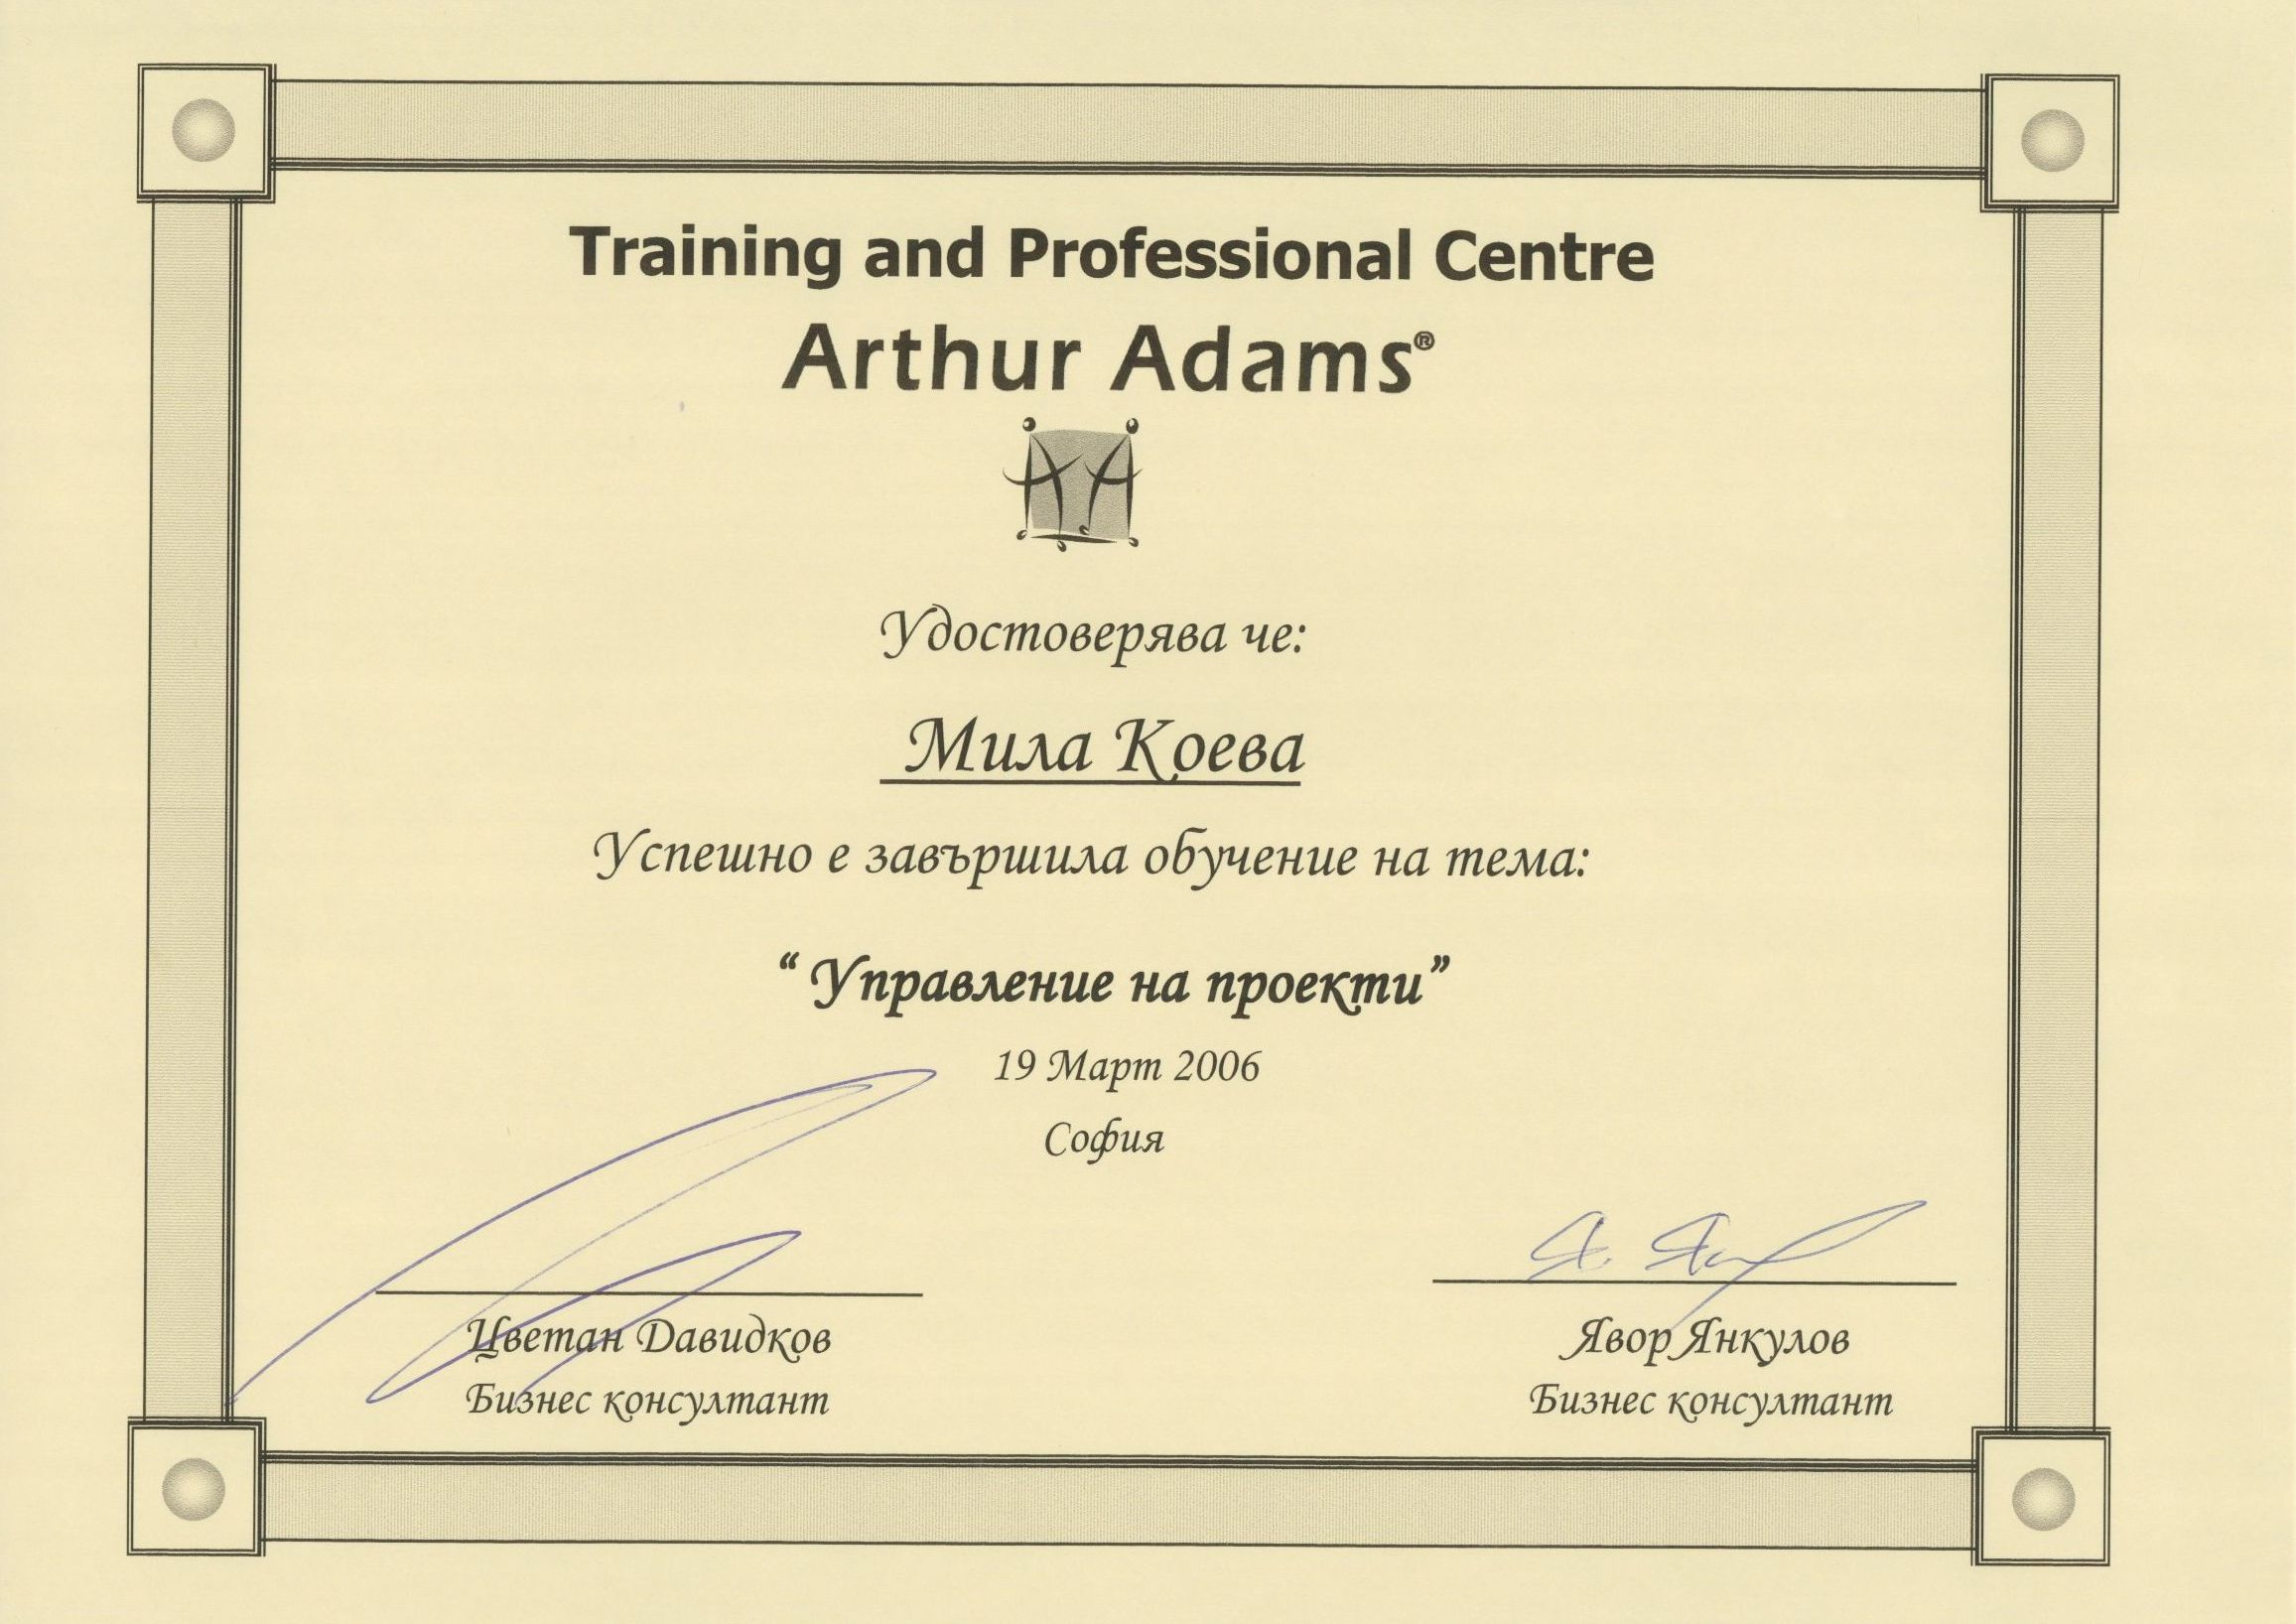 Education mila koeva personal web page certificate of attendance in course for professional project management xflitez Choice Image